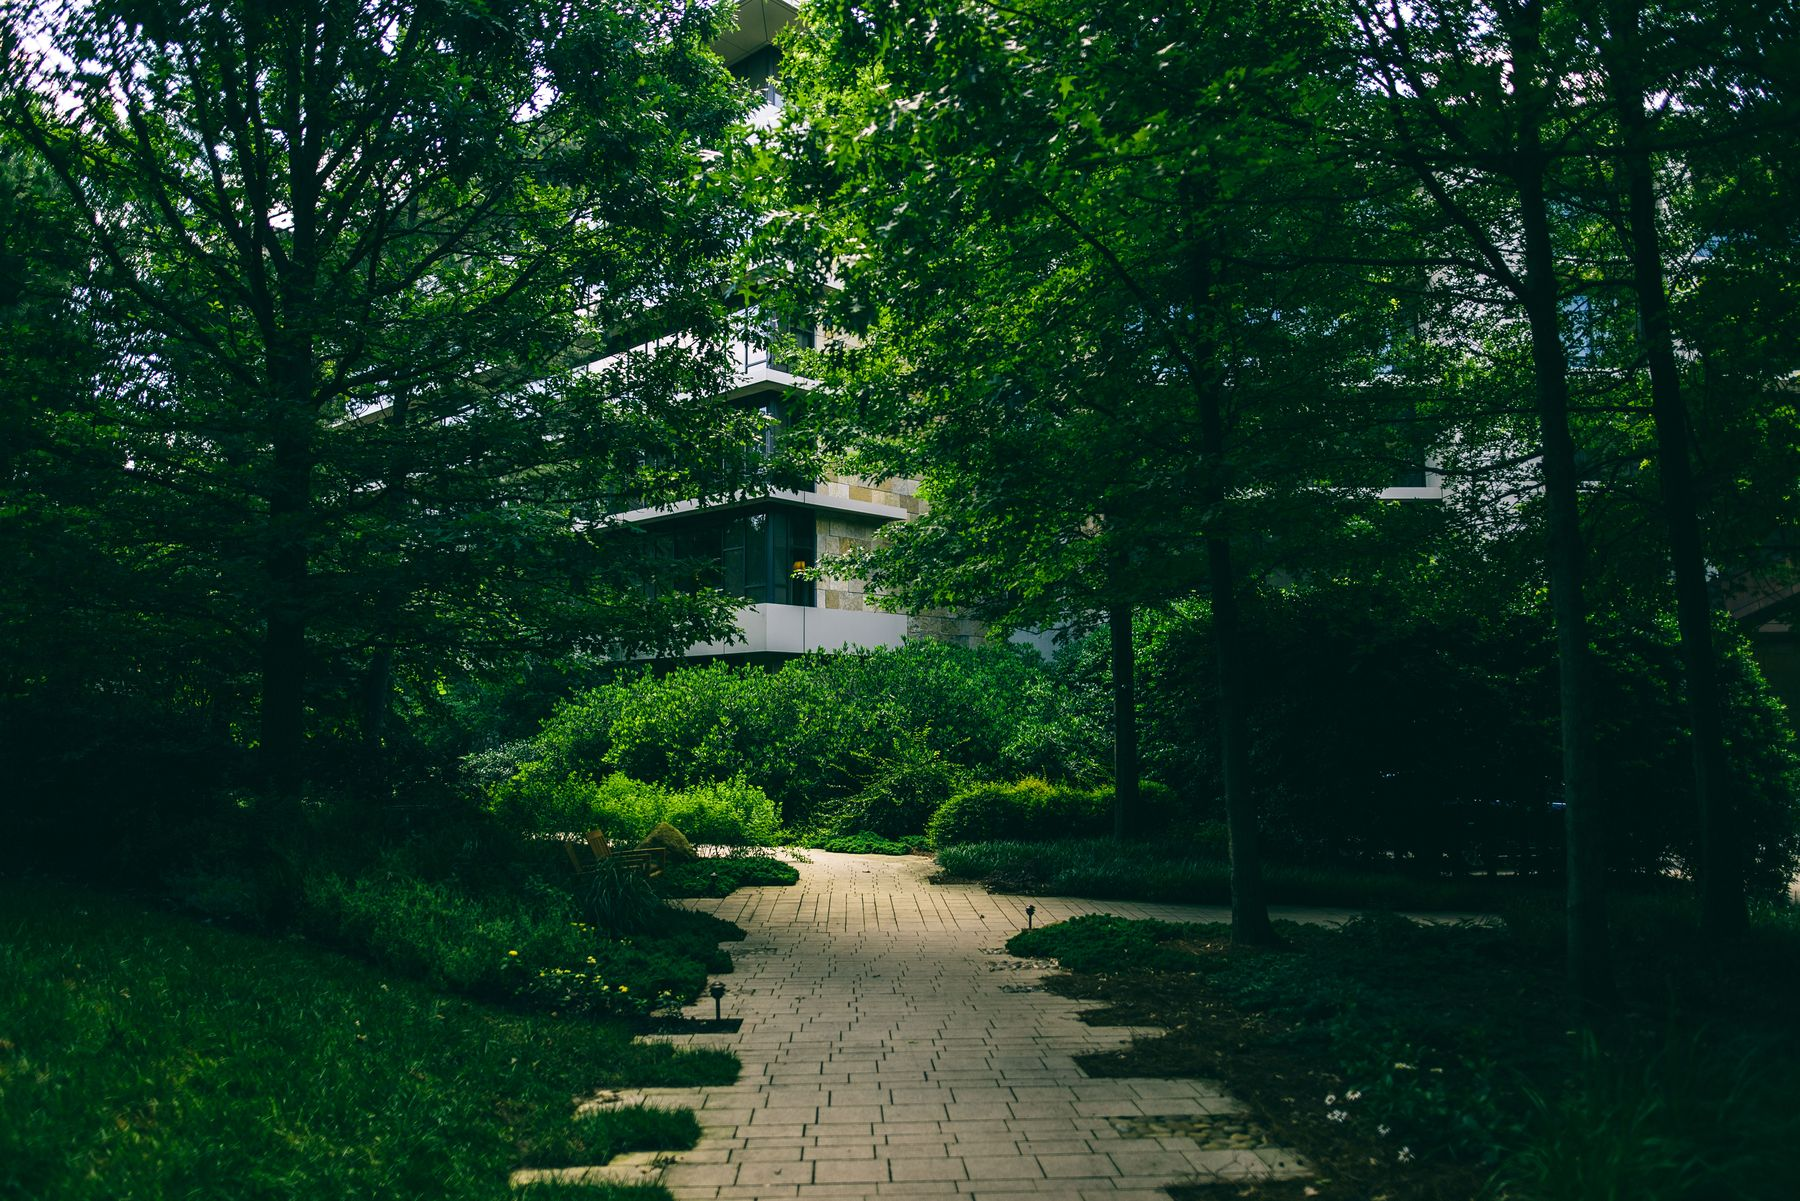 sidewalk path with trees